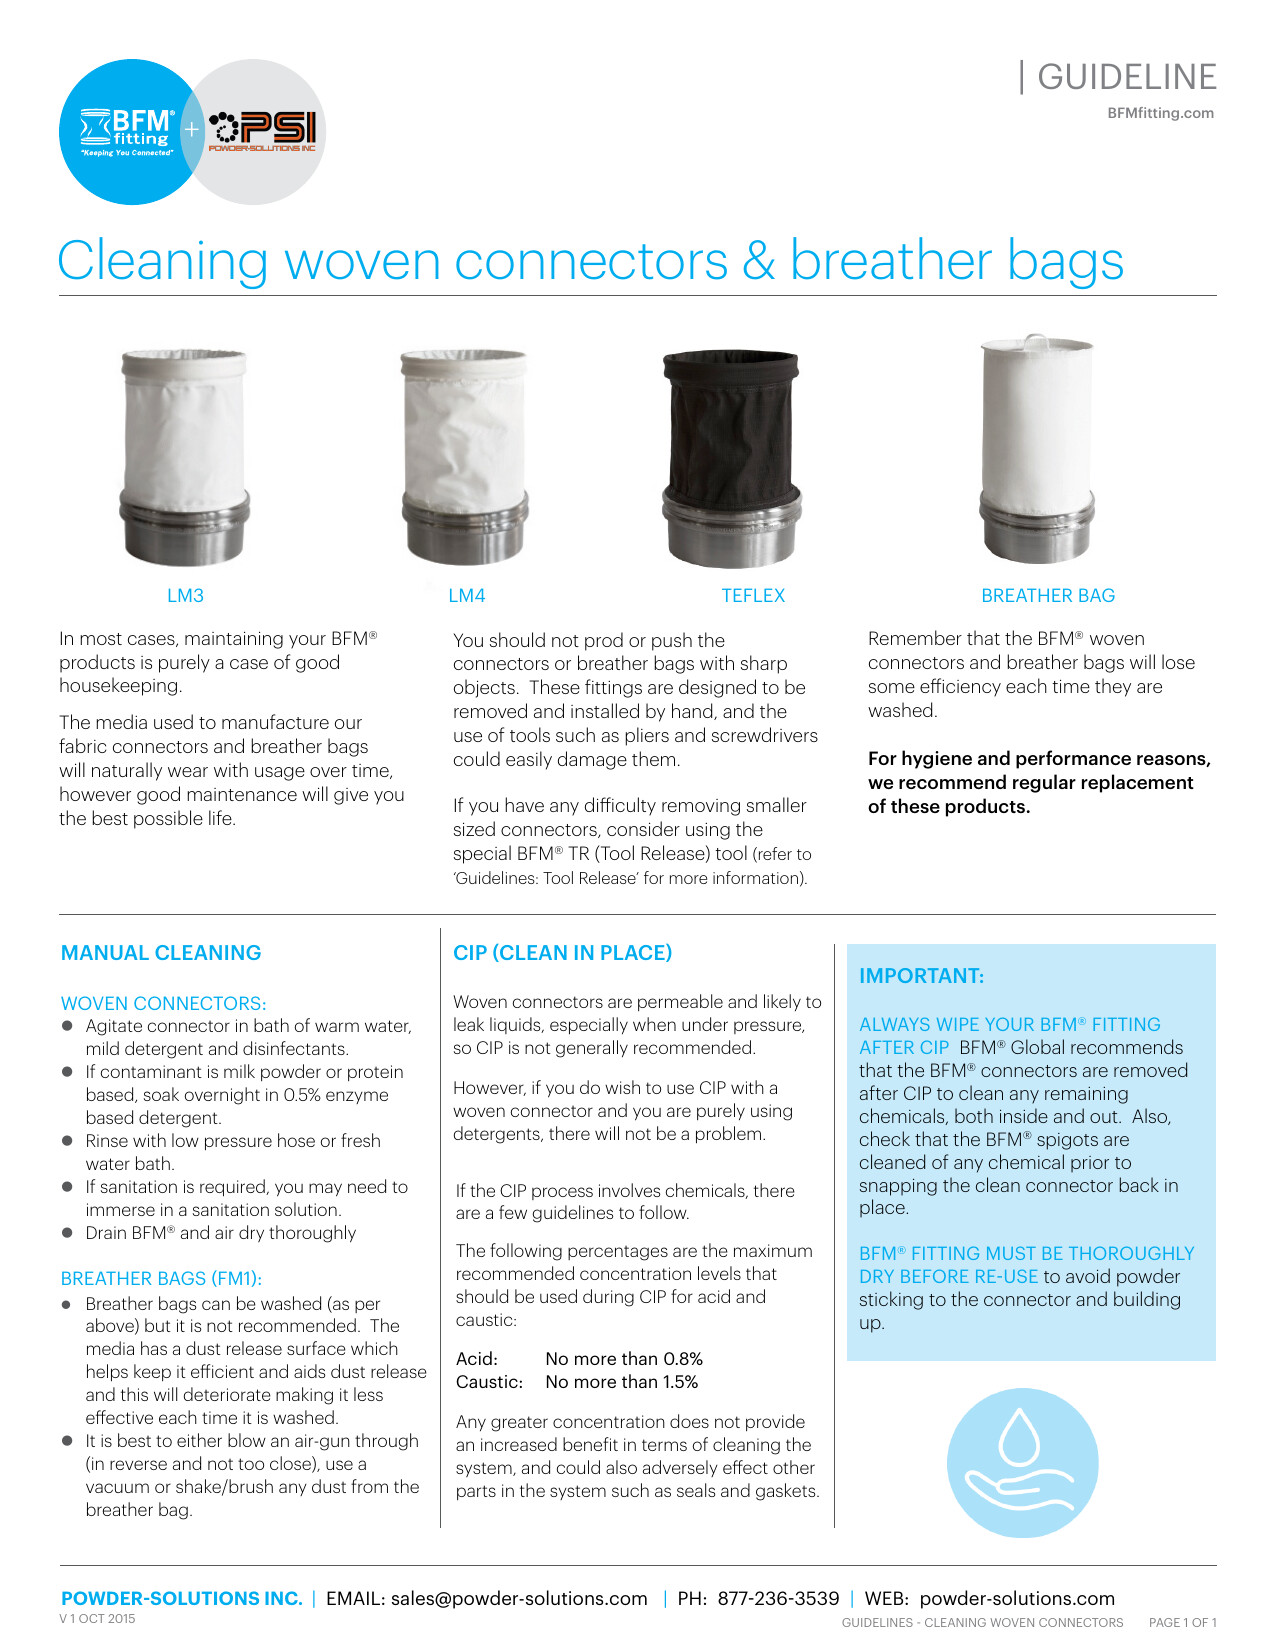 PSI BFM Guidelines - Cleaning Woven Connectors & Breather Bags V1 Oct 2015